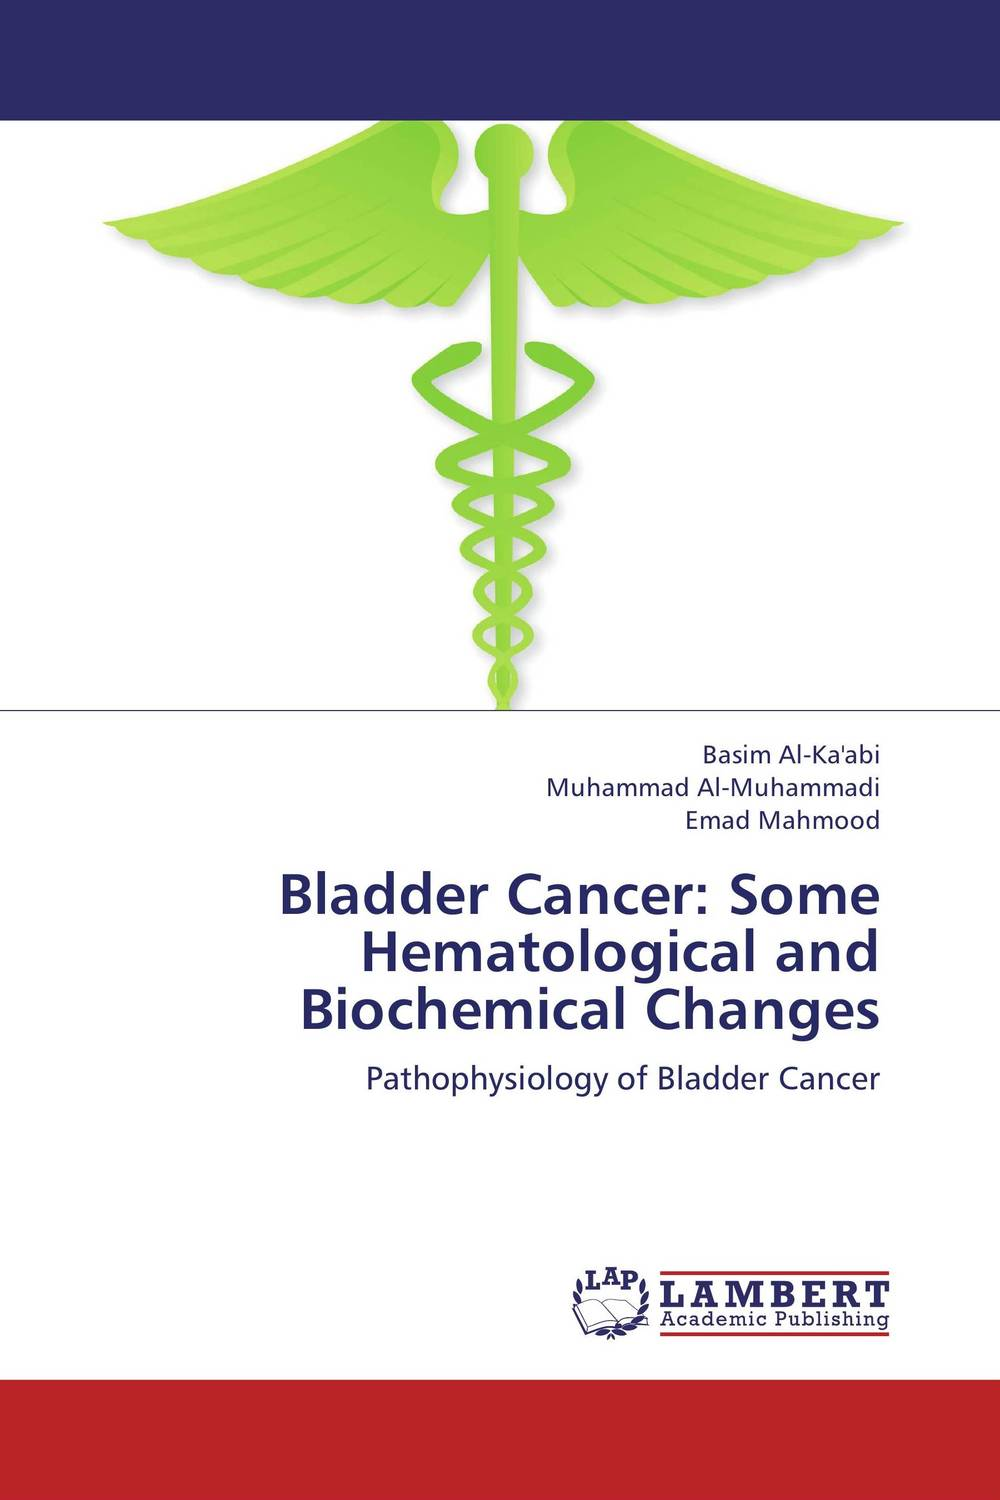 Bladder Cancer: Some Hematological and Biochemical Changes viruses cell transformation and cancer 5